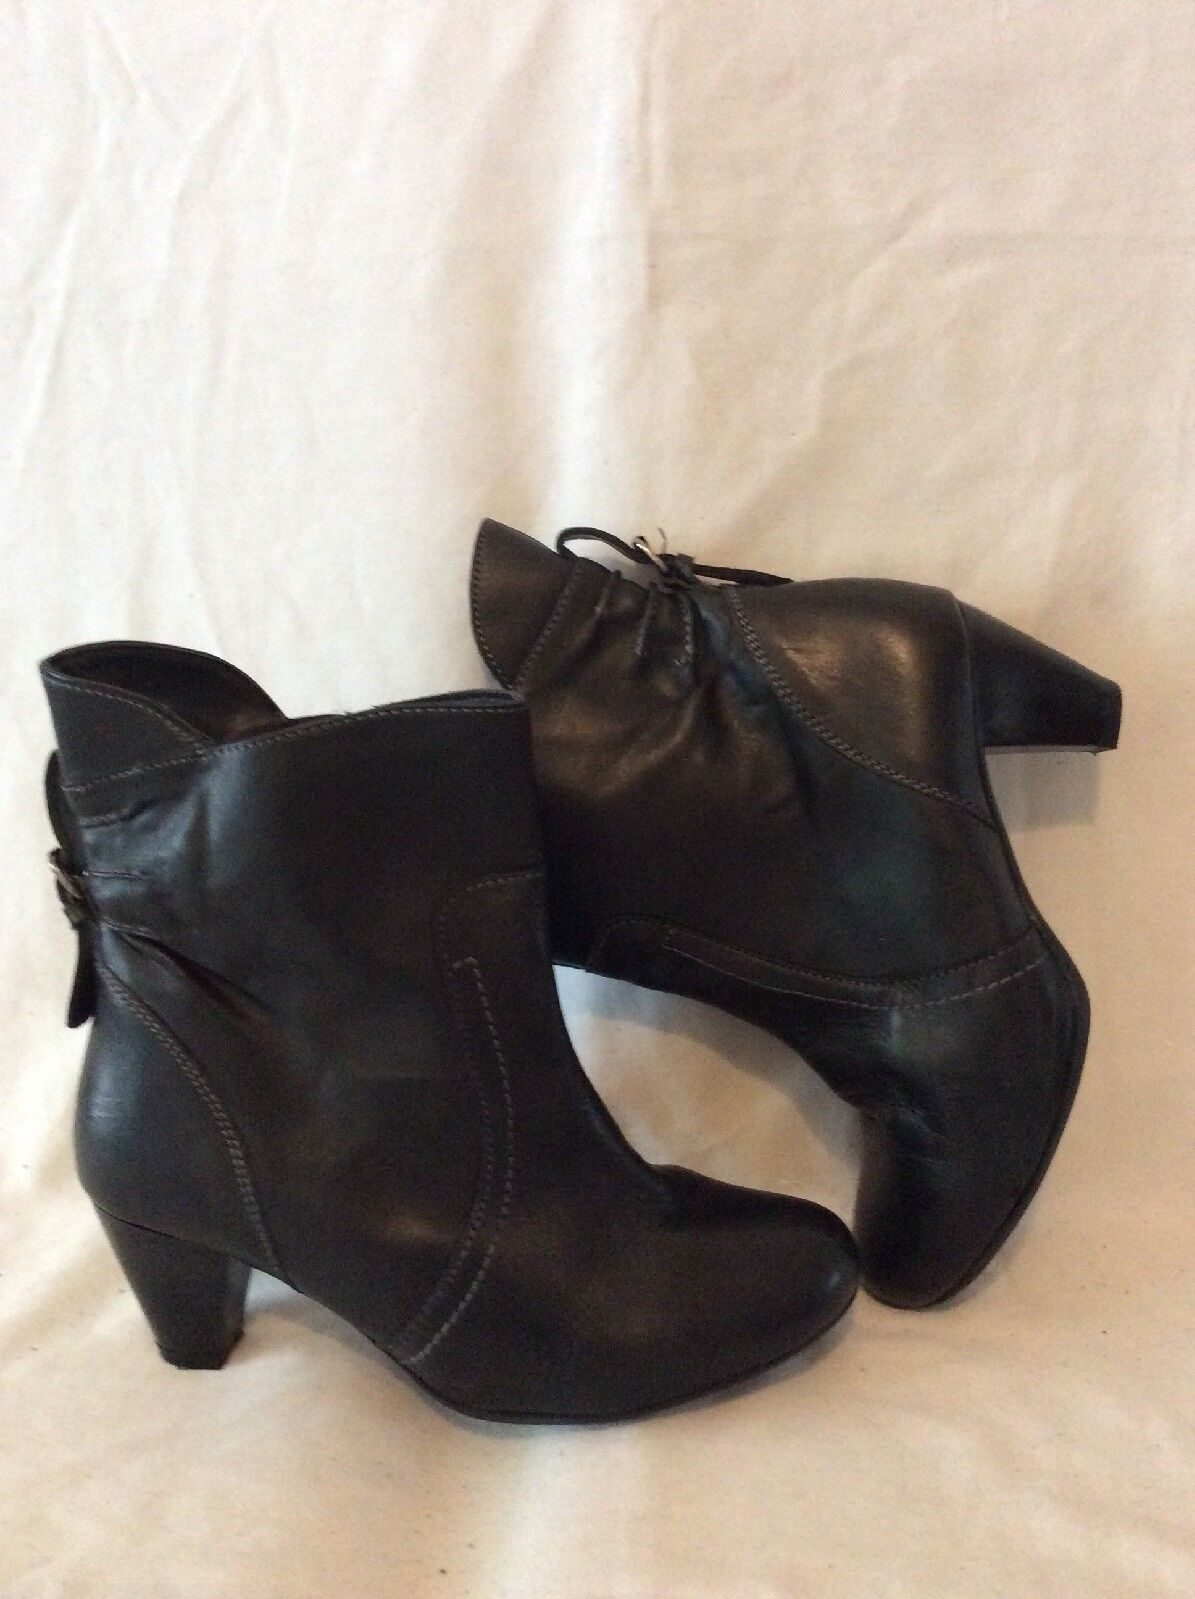 Kaleidoscope Black Ankle Leather Boots Size 5